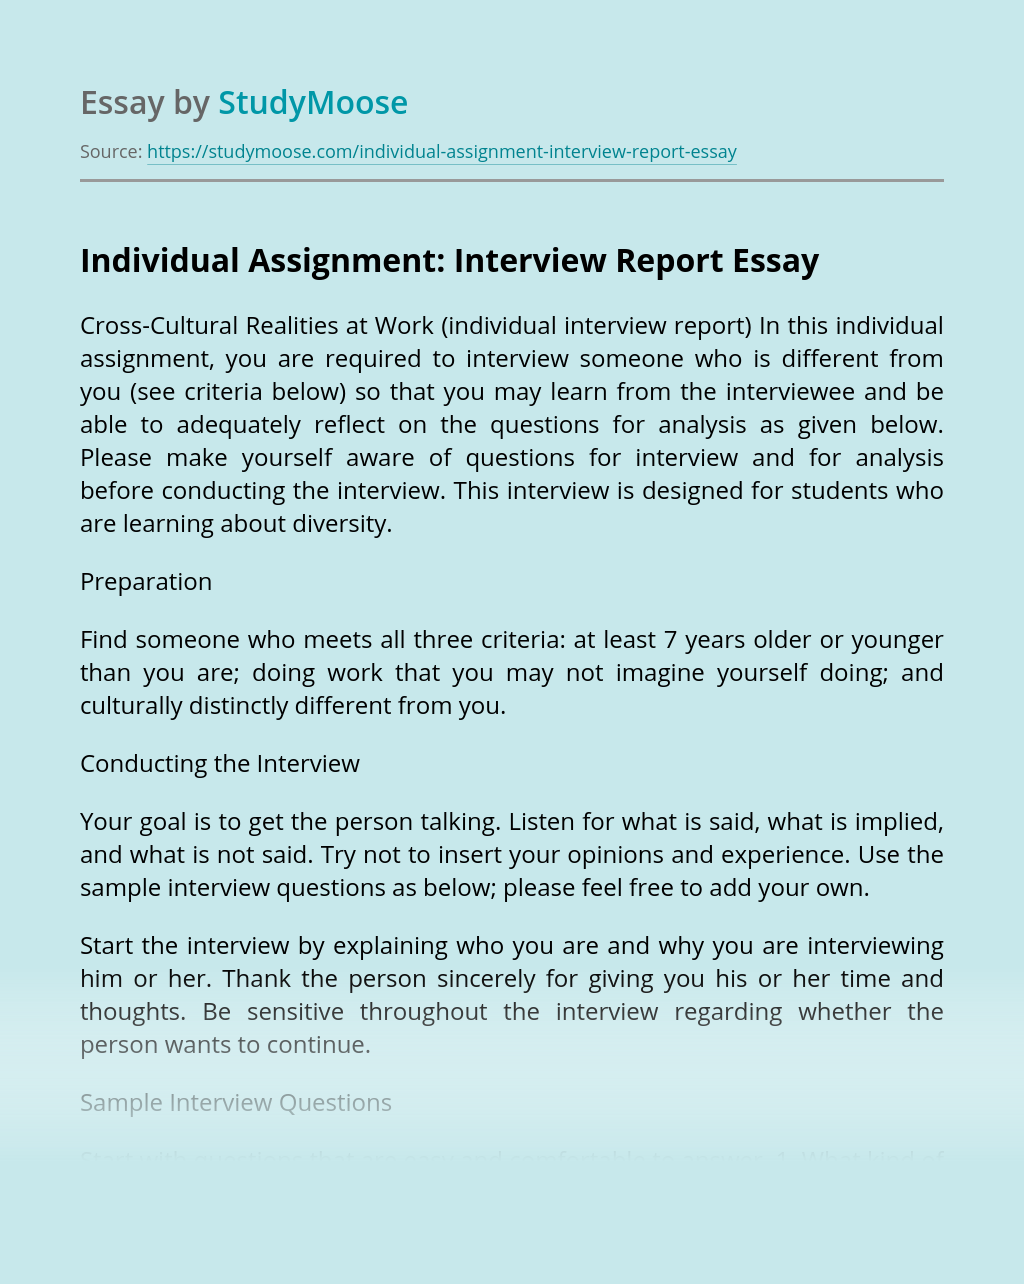 Individual Assignment: Interview Report